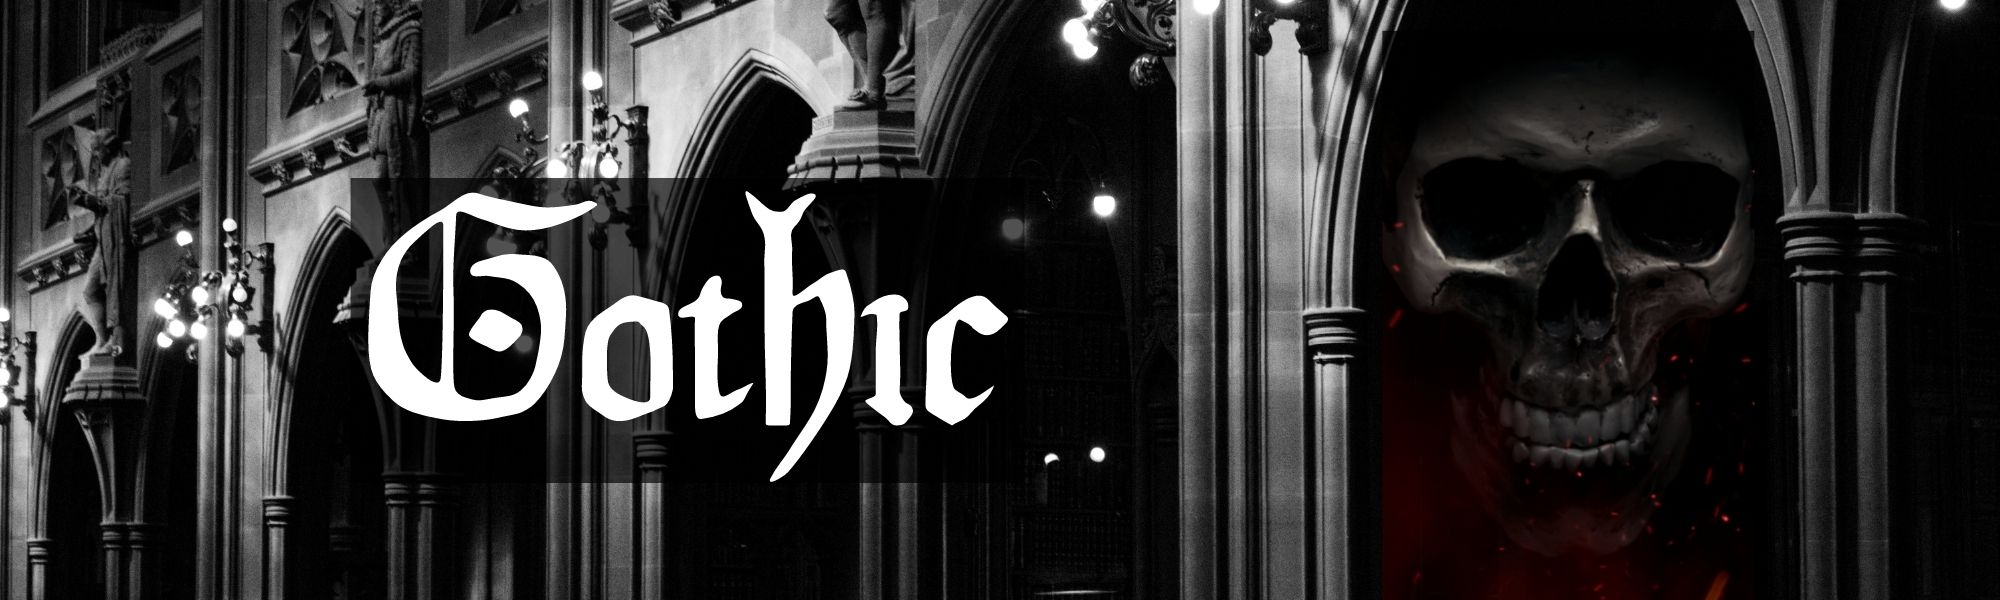 trad goth design with gothic church in background with skull in shadow of the archway and gothic writing